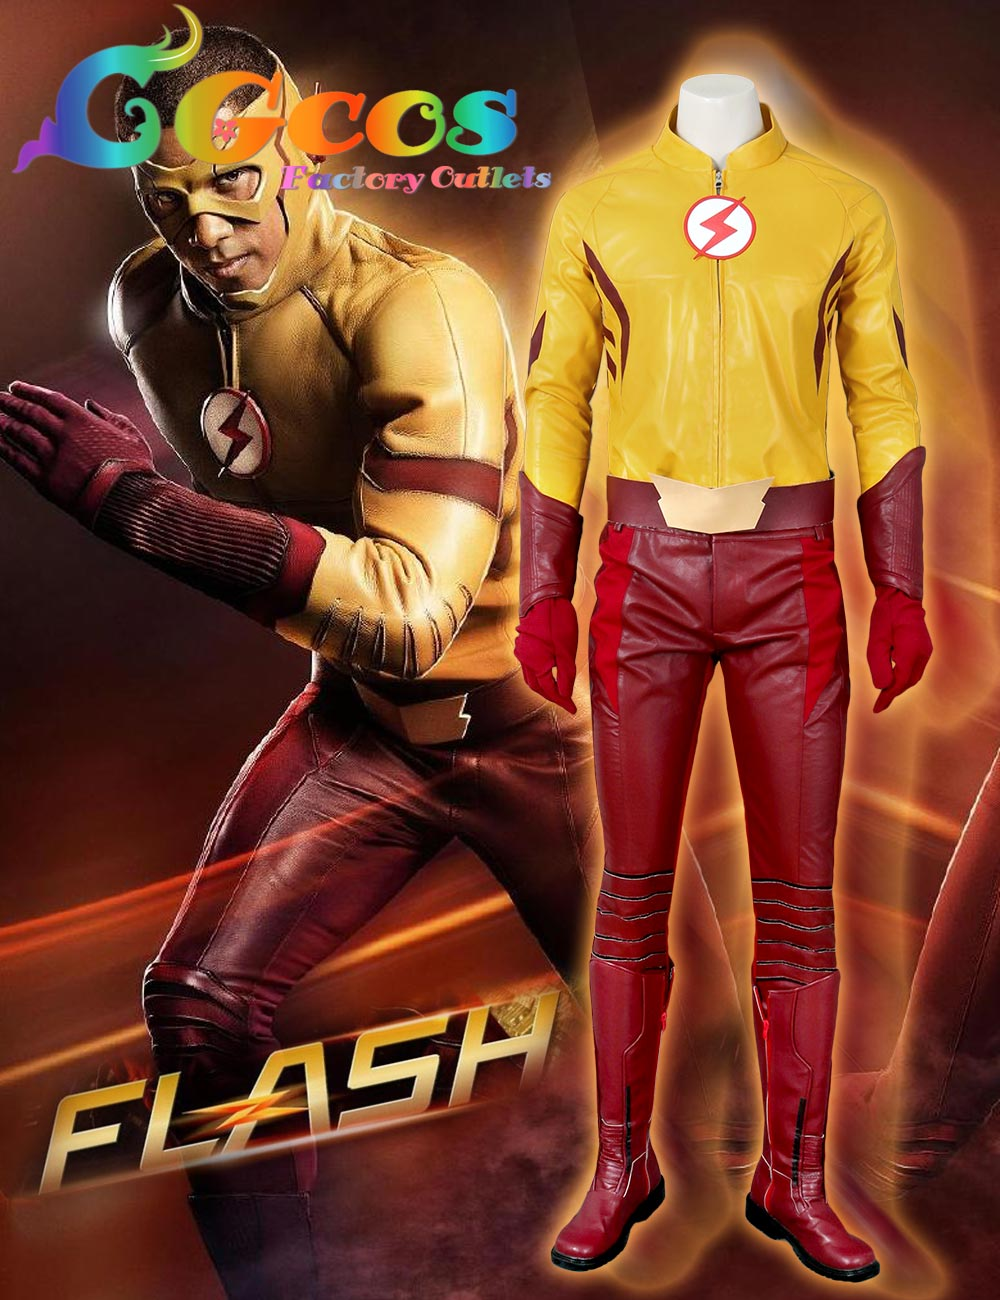 CGCOS CGCOS Hot Free Shipping Cos Cosplay Costume The Flash Season 3 Wally West Uniform with boots Halloween Christmas